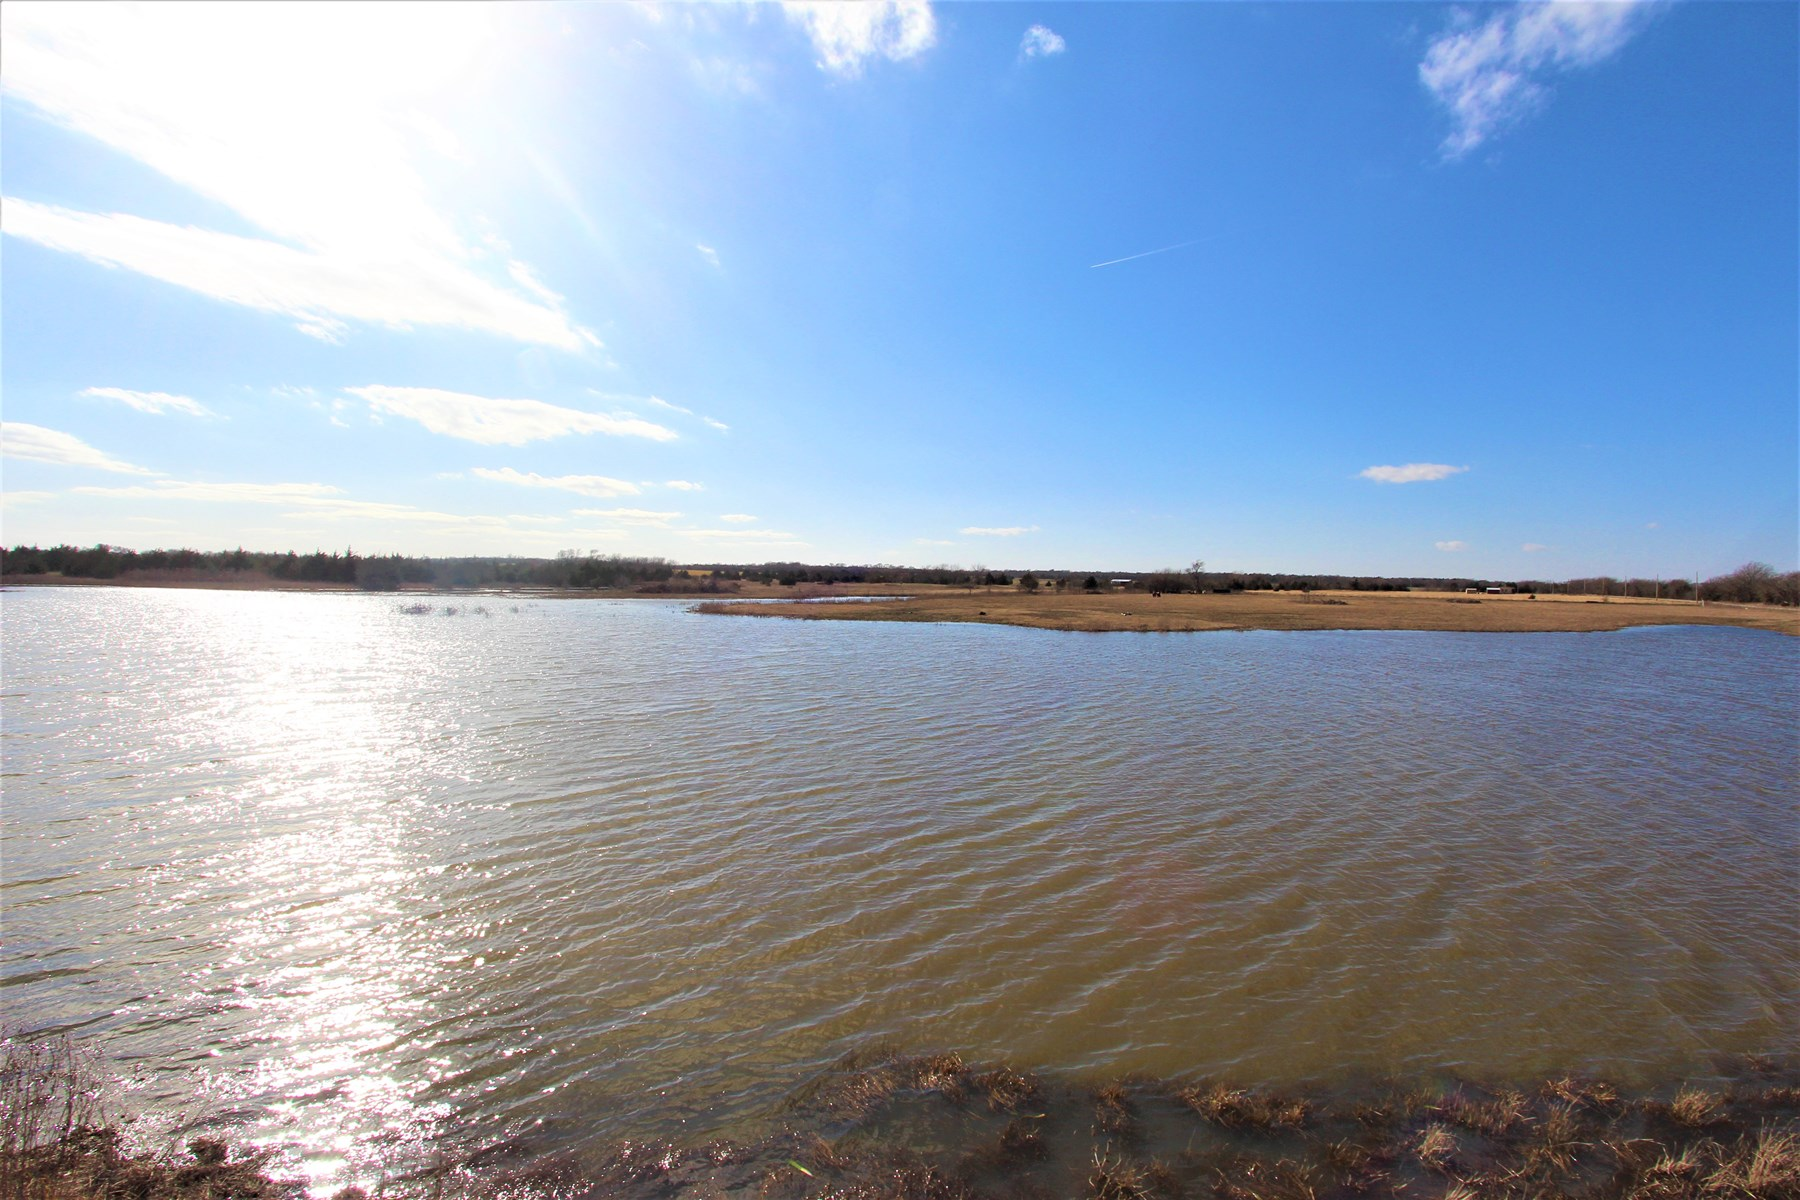 Hunting & Recreational Land For Sale In Greenville Texas